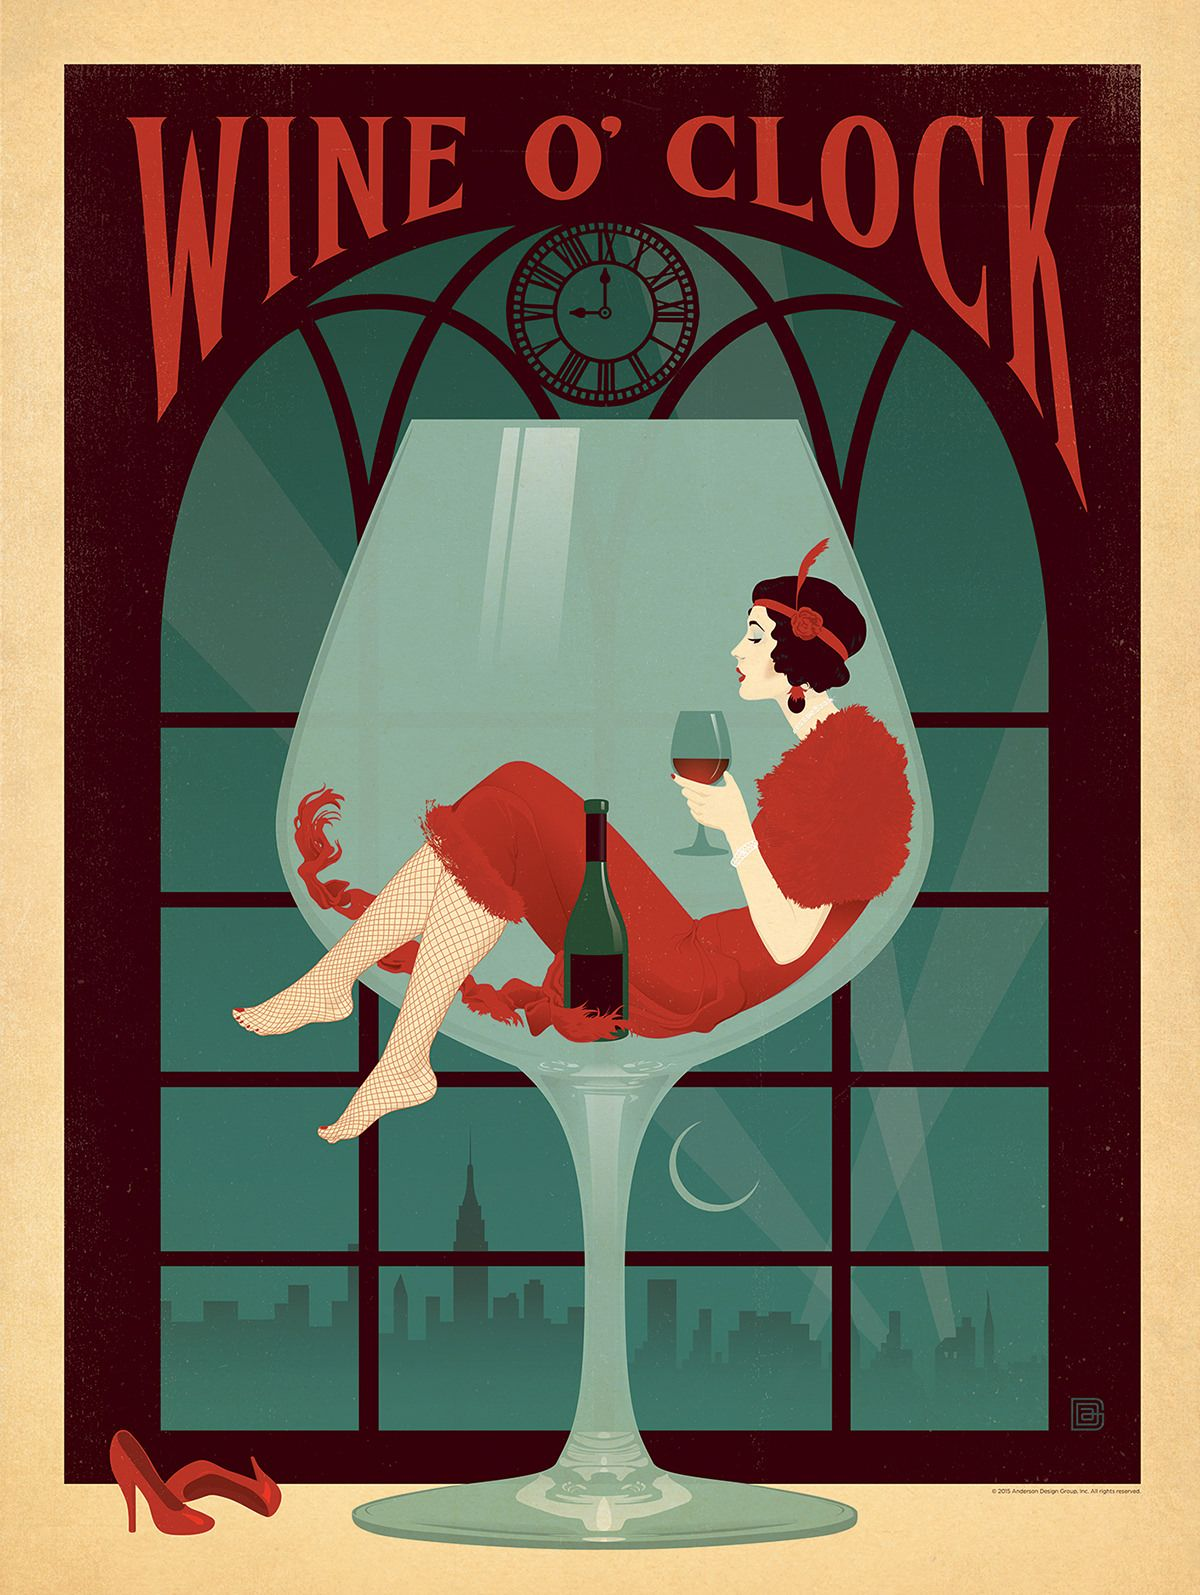 I Try To Keep My Whining Confined To A Defined Time Frame Illustration Vector Vectorart Vectorillus Art Deco Posters Art Deco Illustration Art Deco Design